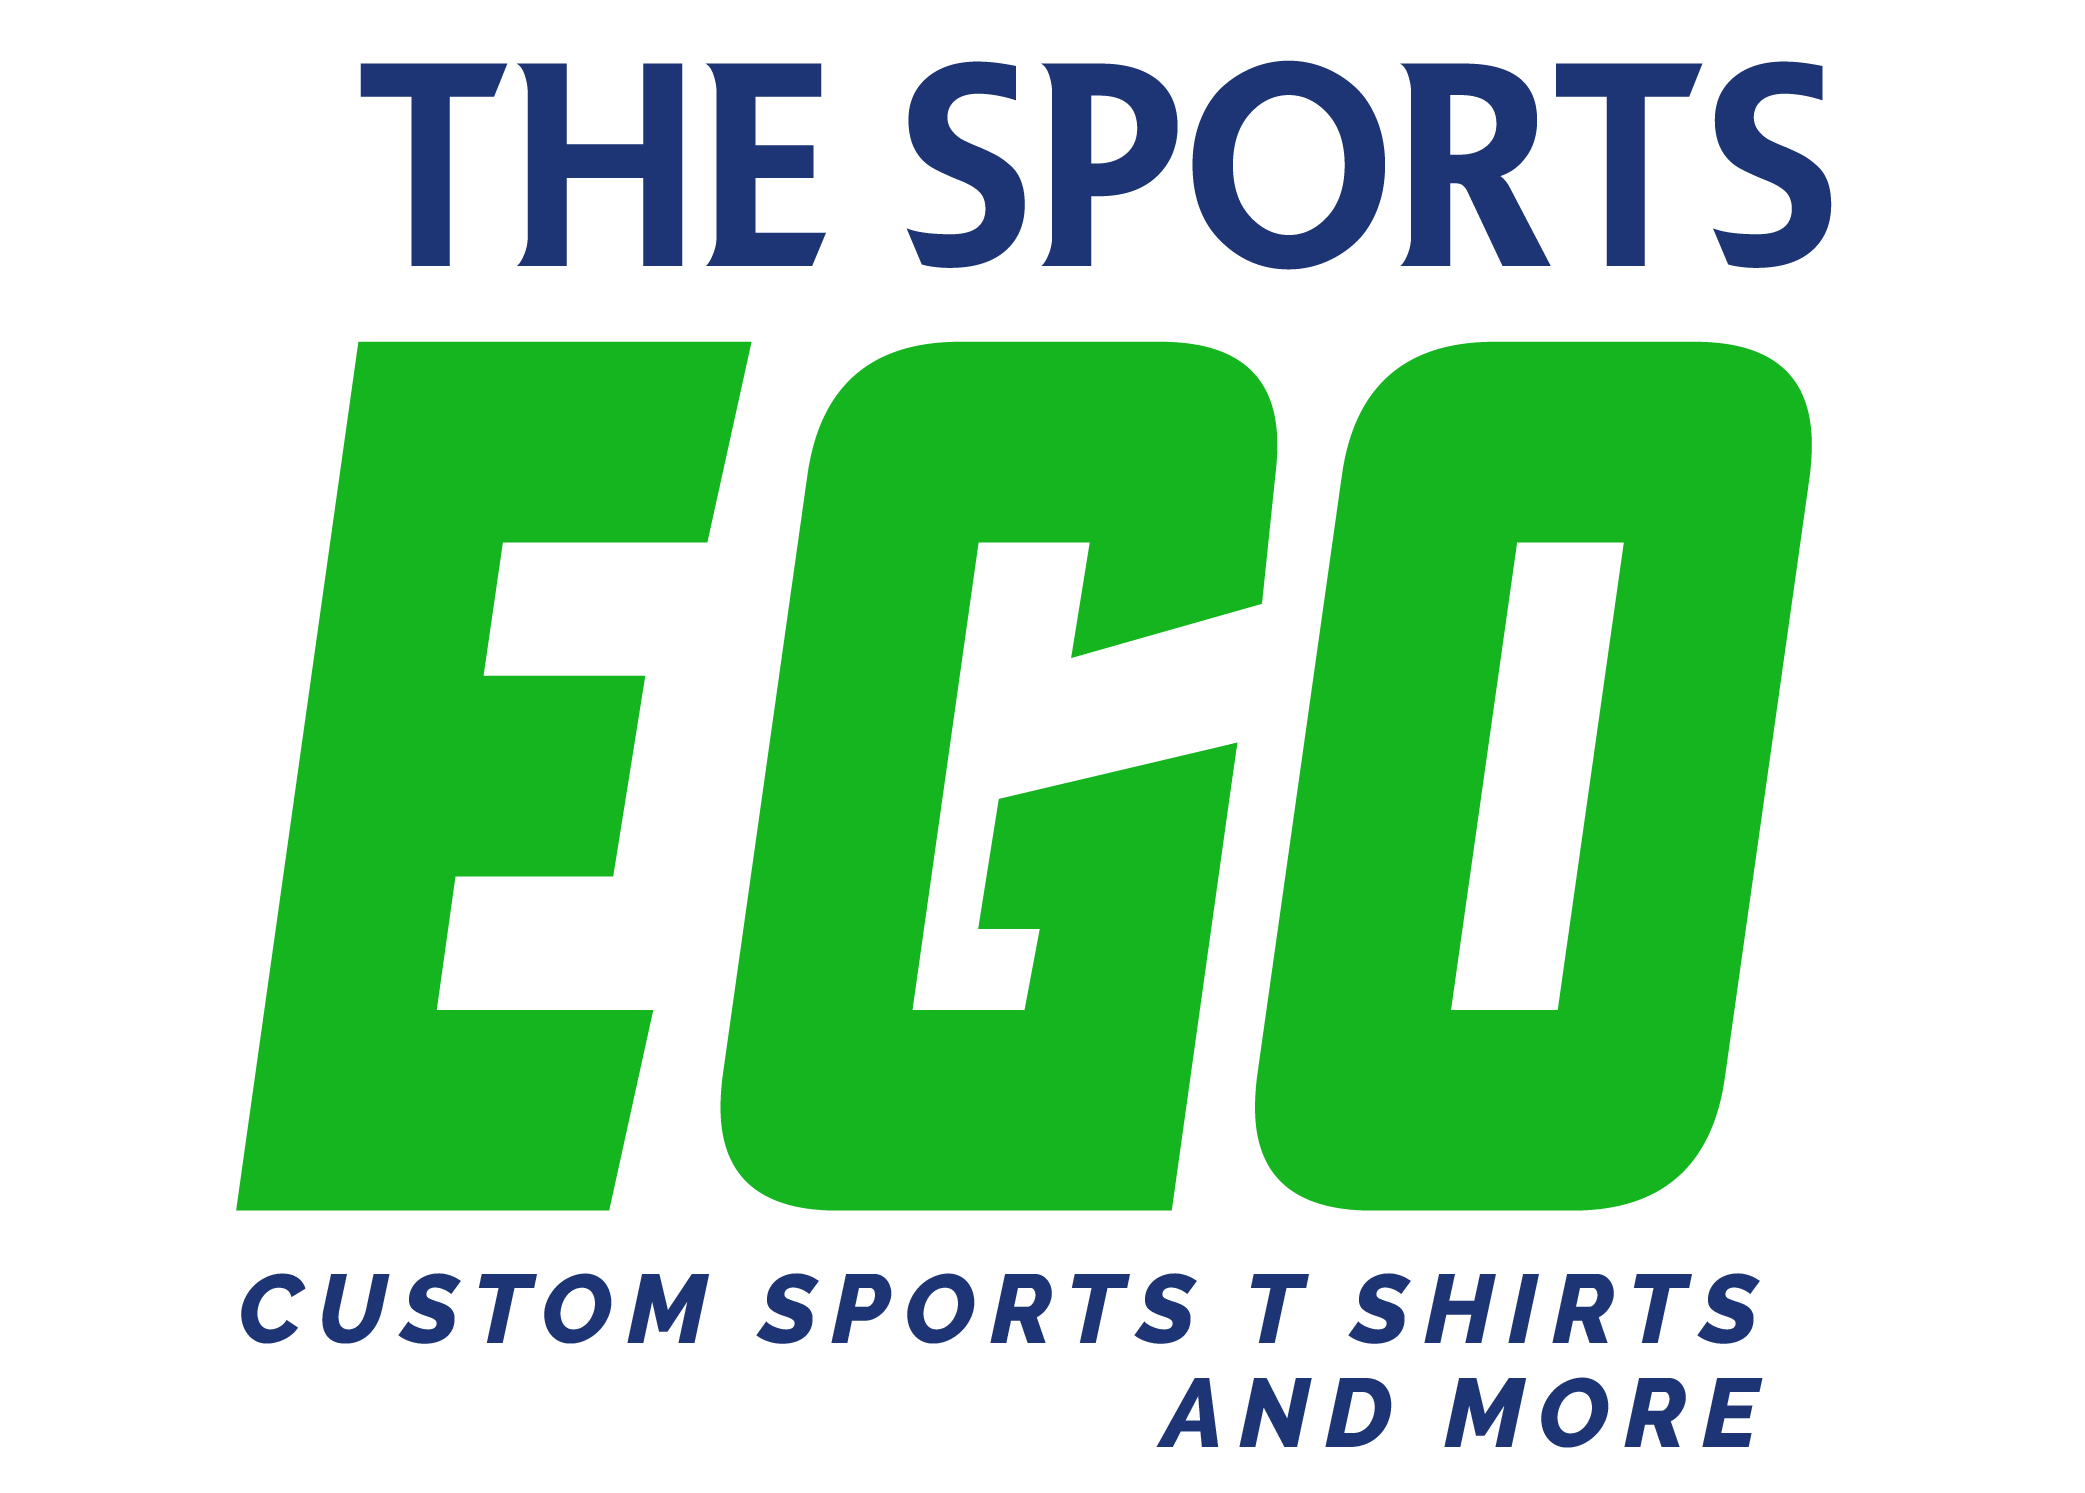 The Sports Ego